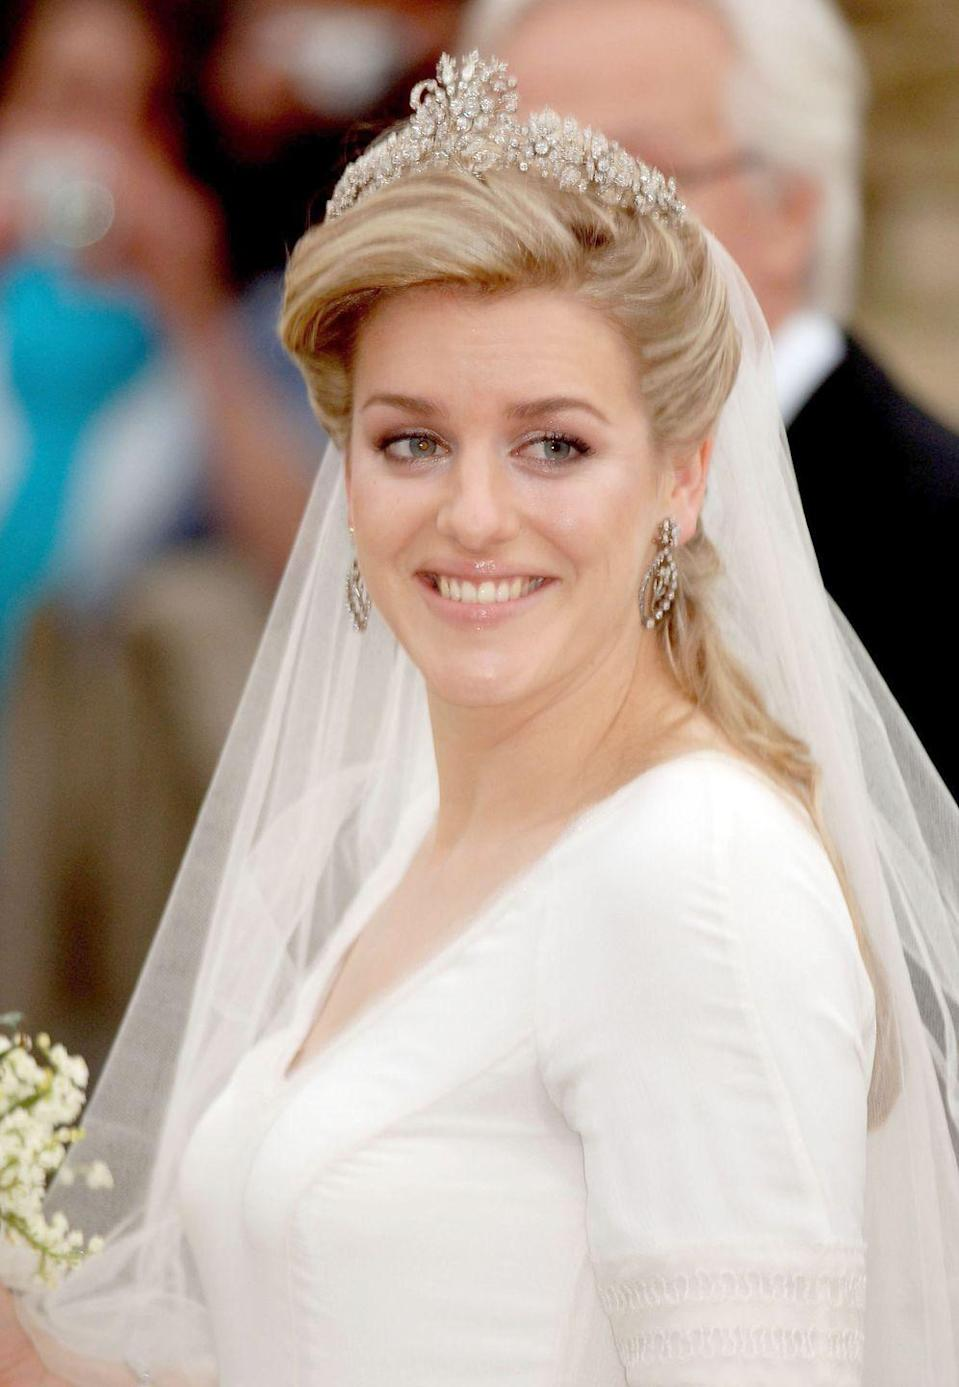 <p>This tiara was worn by Laura Lopes, the daughter of Camilla, Duchess of Cornwall, for her wedding in 2006. Camilla also wore it for her first wedding to Andrew Parker-Bowles, and has been pictured in it as recently as 2015. </p>